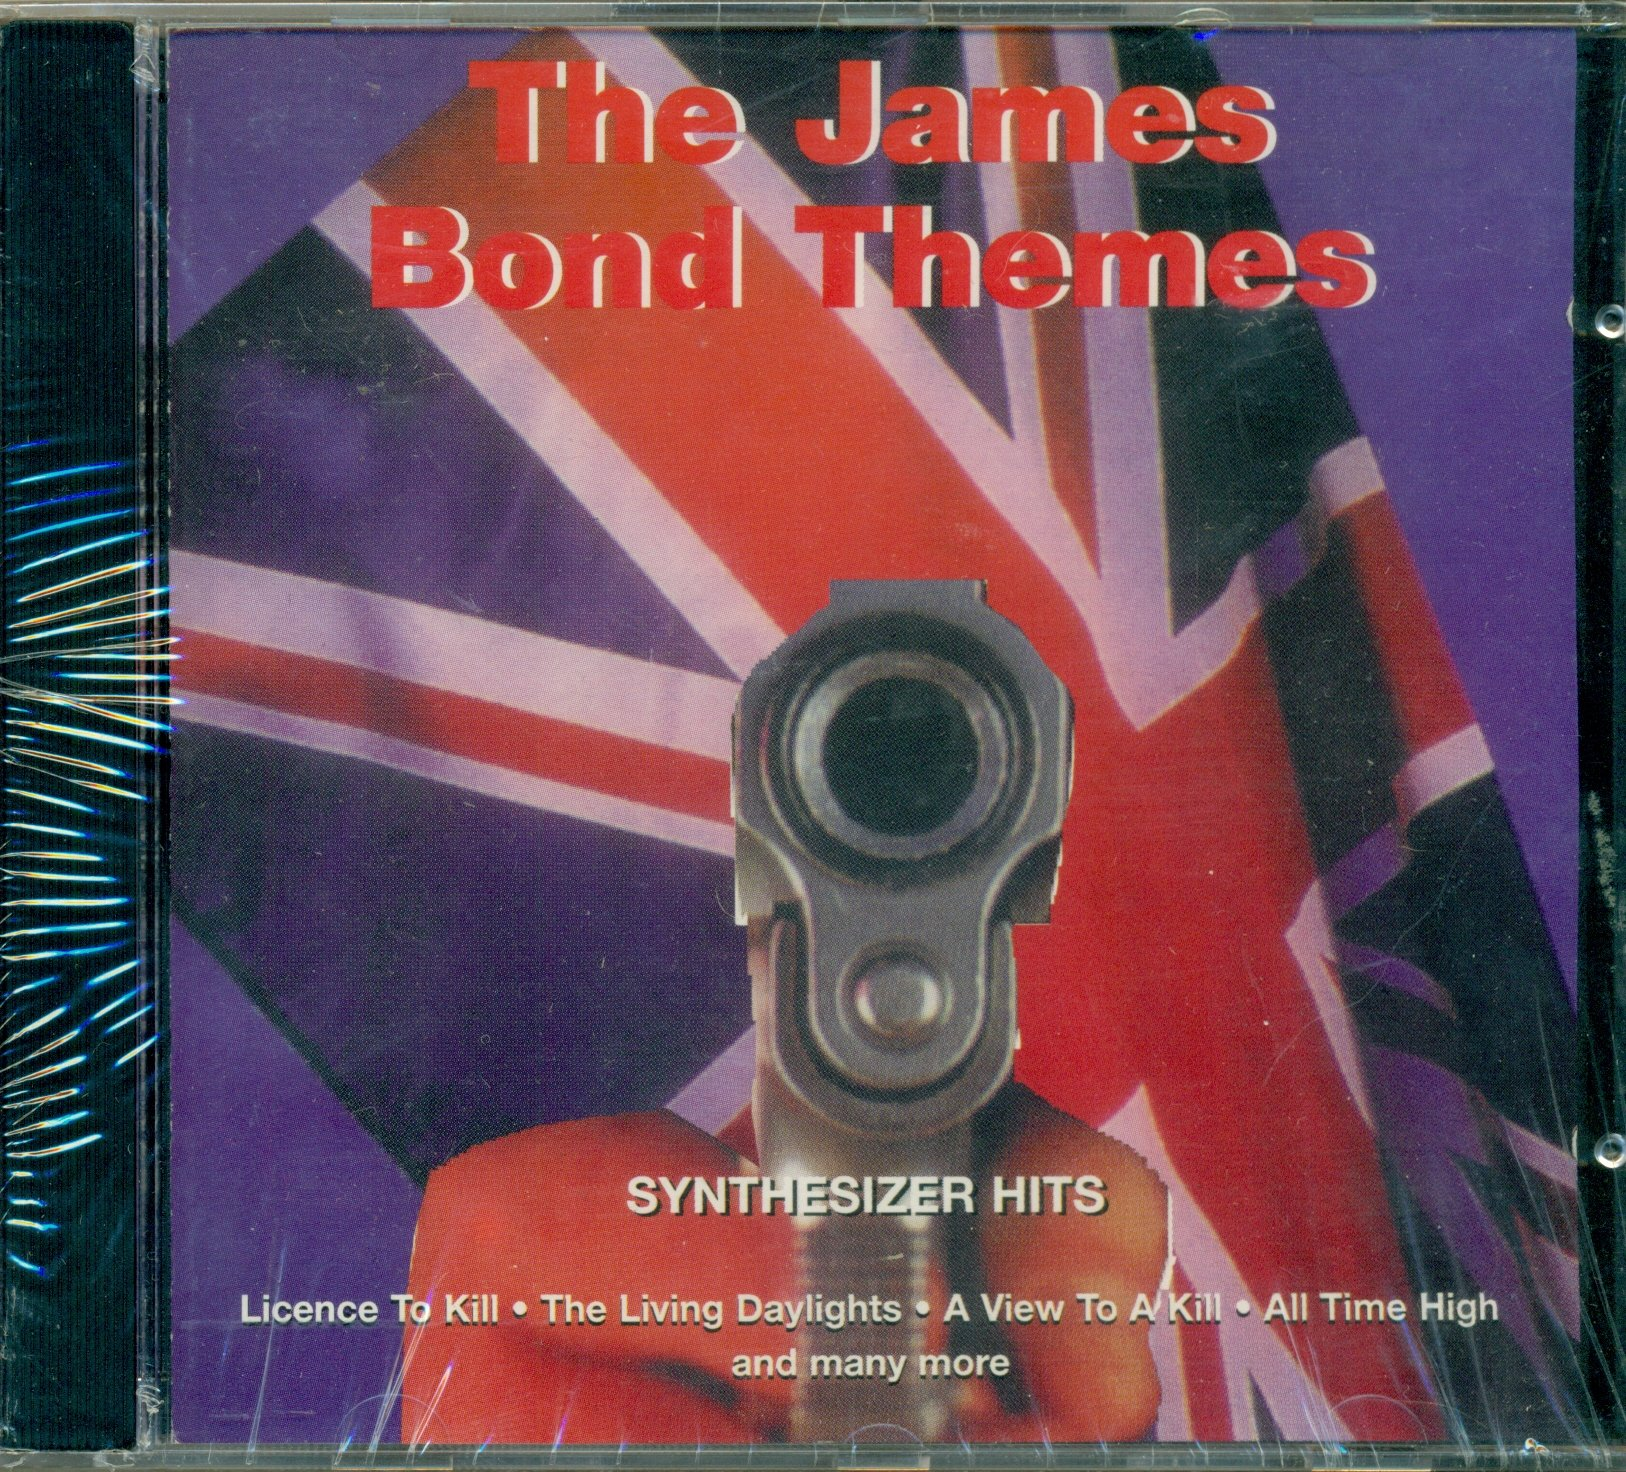 The James Bond Themes - Synthesizer Hits